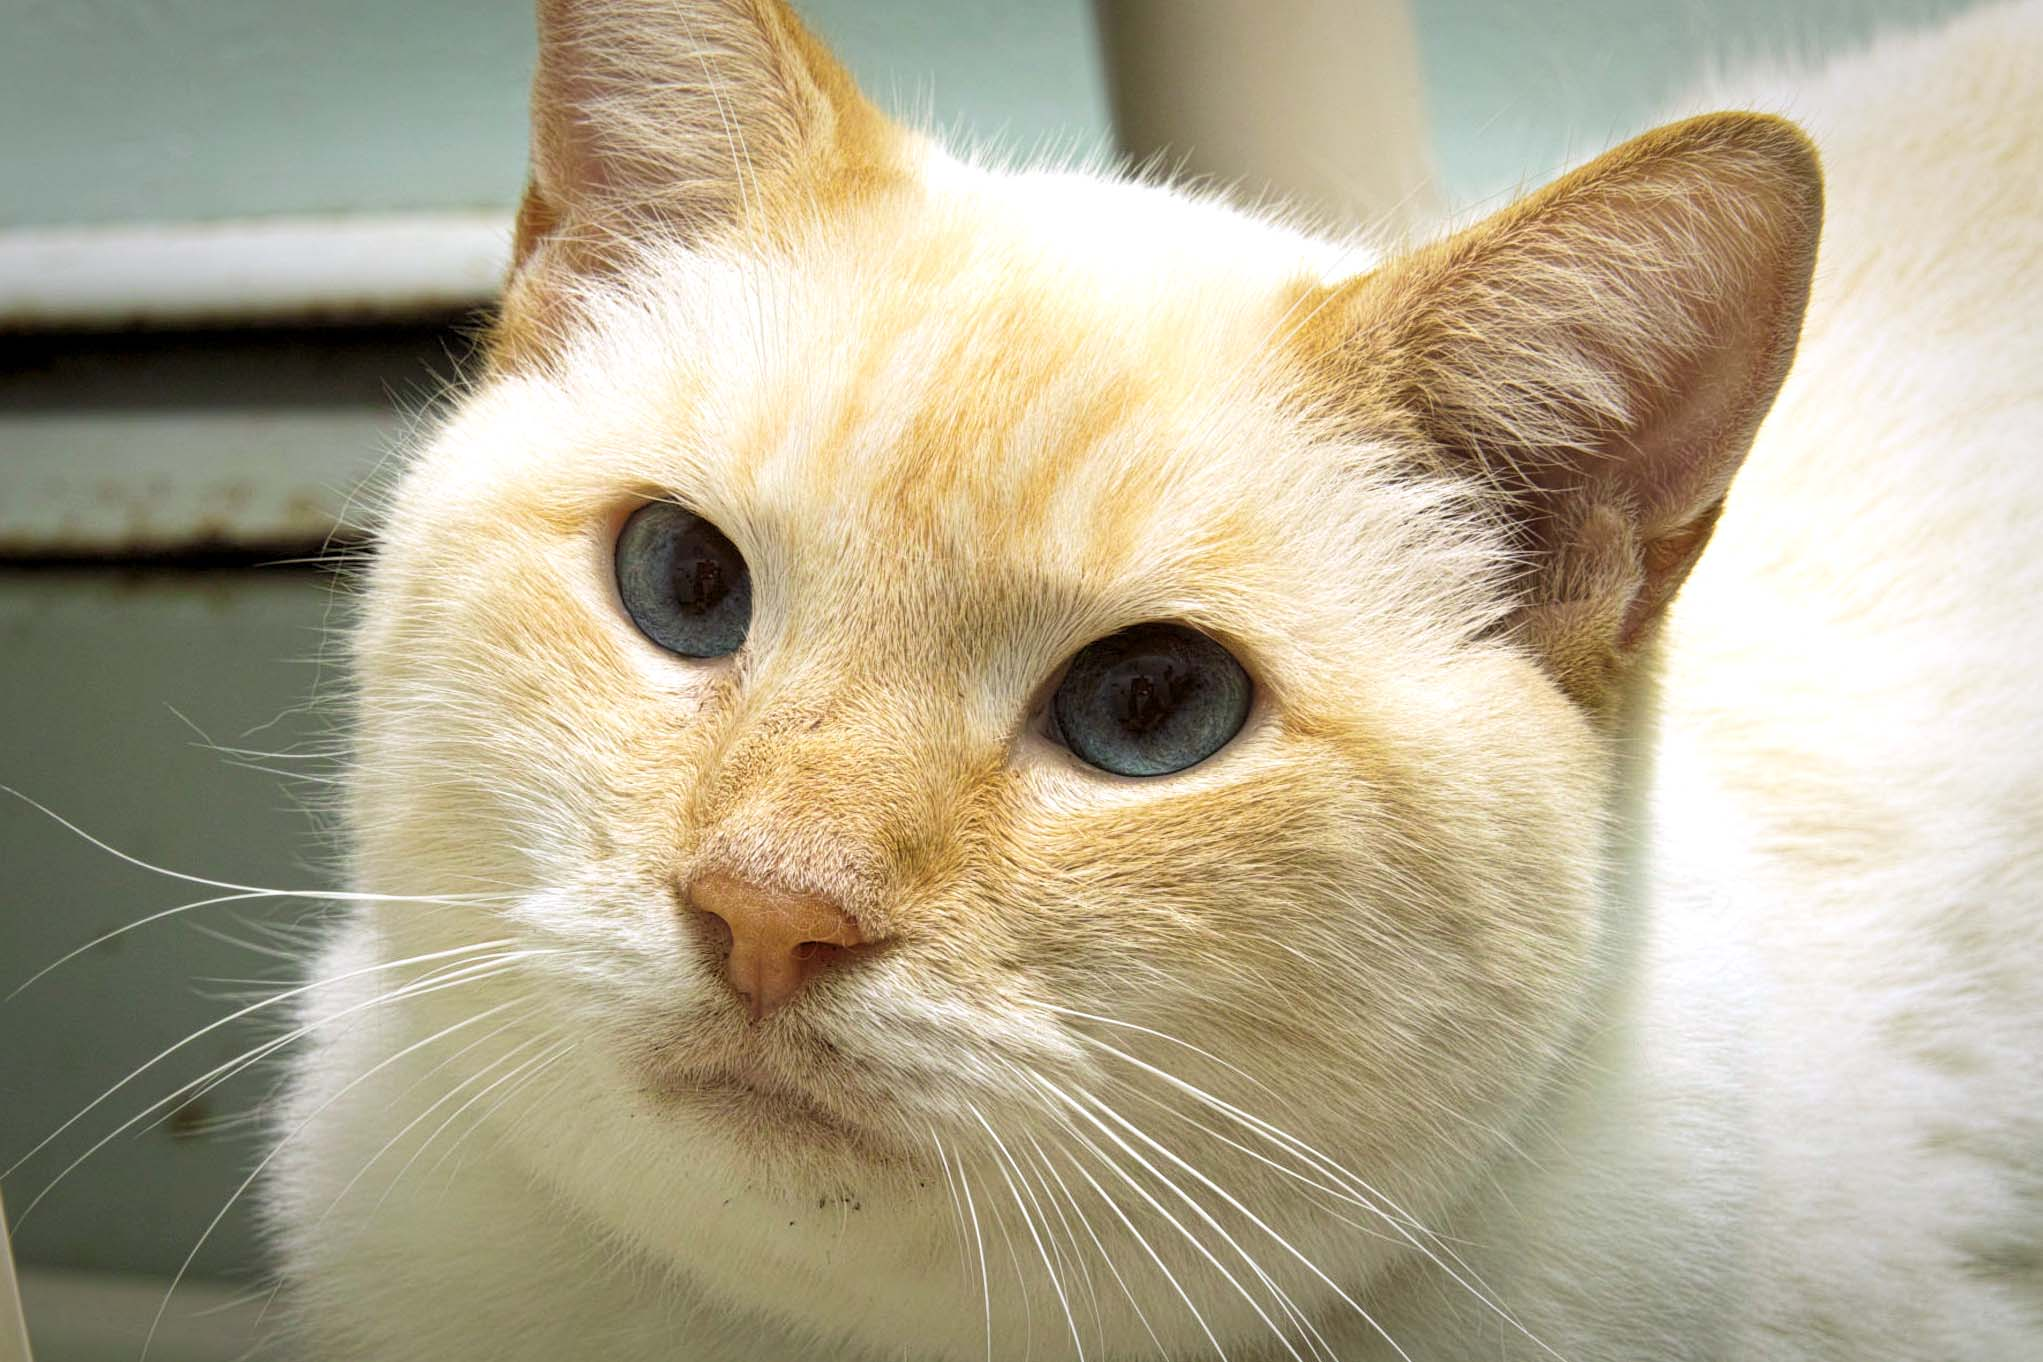 Kitty Kat is 7 years old. He was brought in because his owners were moving and couldn't take him with. He is a spunky cat with a lot of personality! Any household would be lucky to have his company (or so he would have you think).